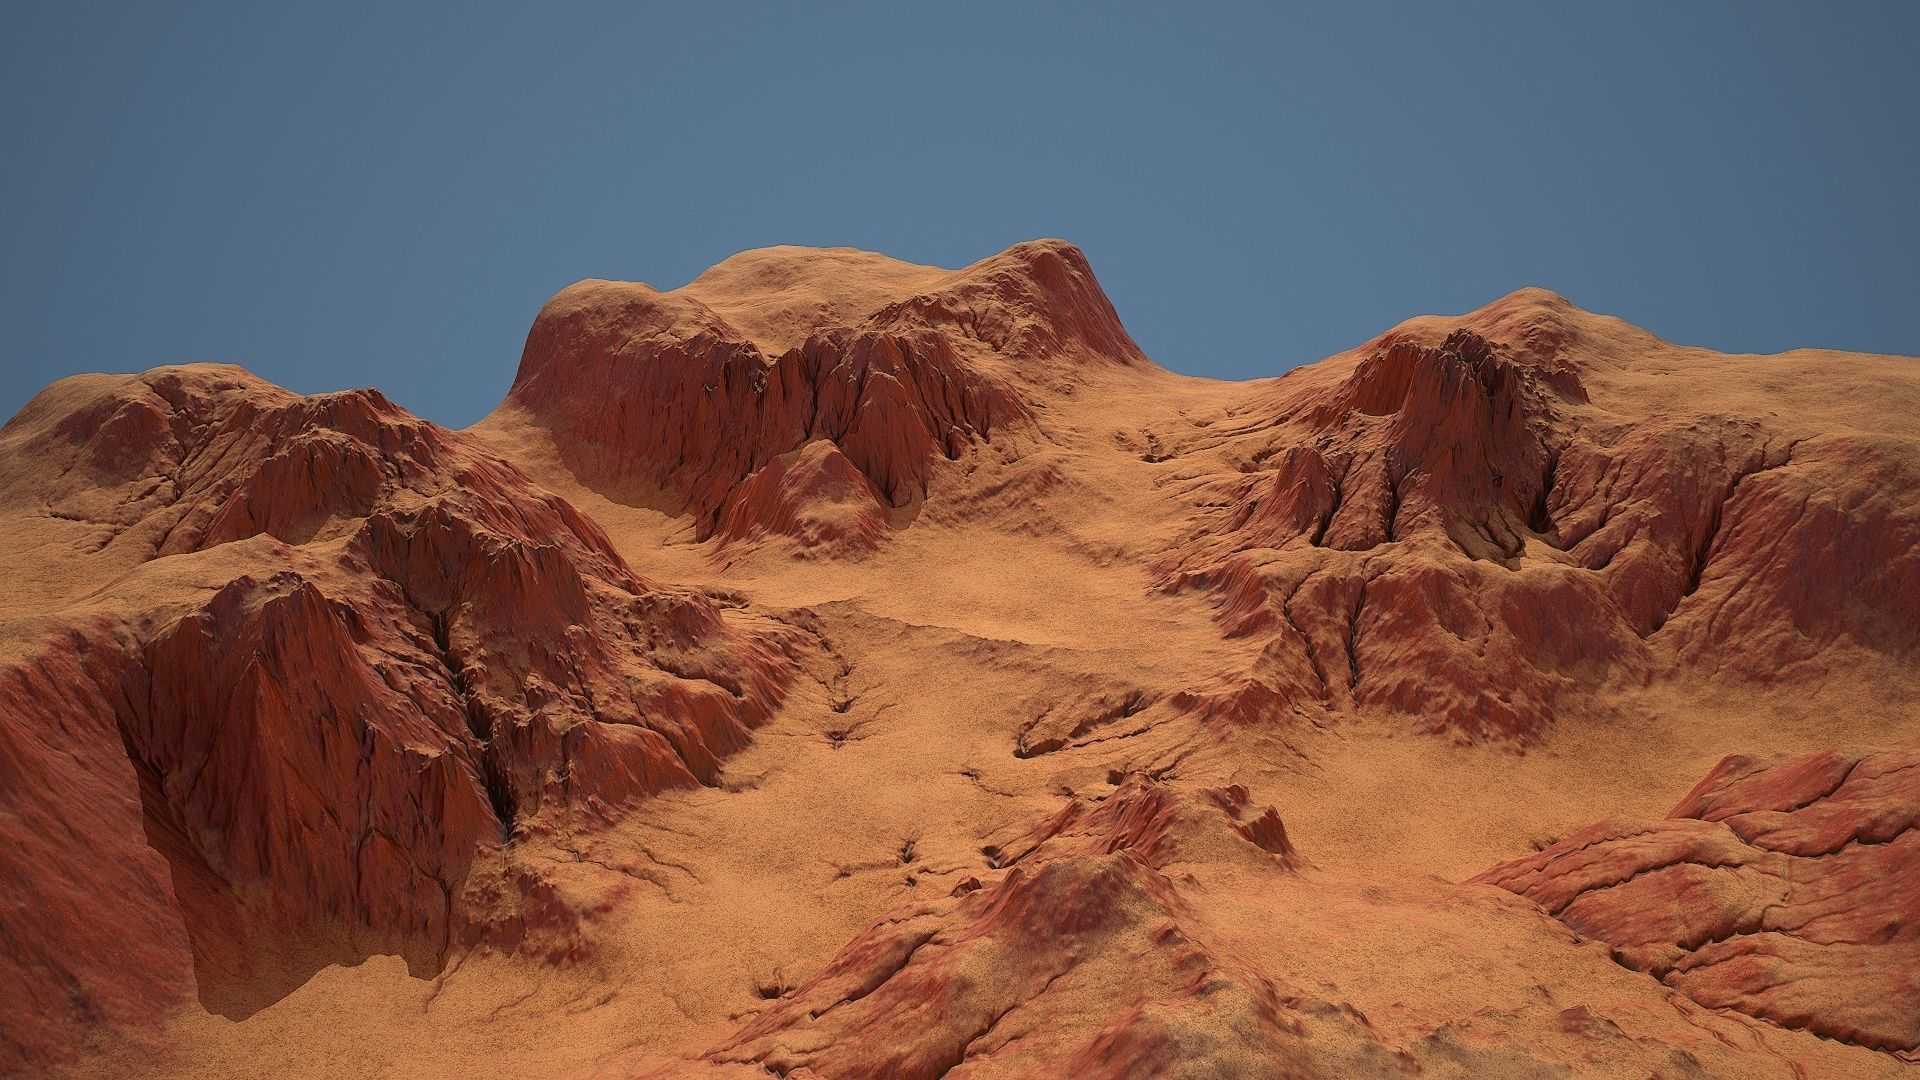 Tileable crossroad canyon with red rocks and sand